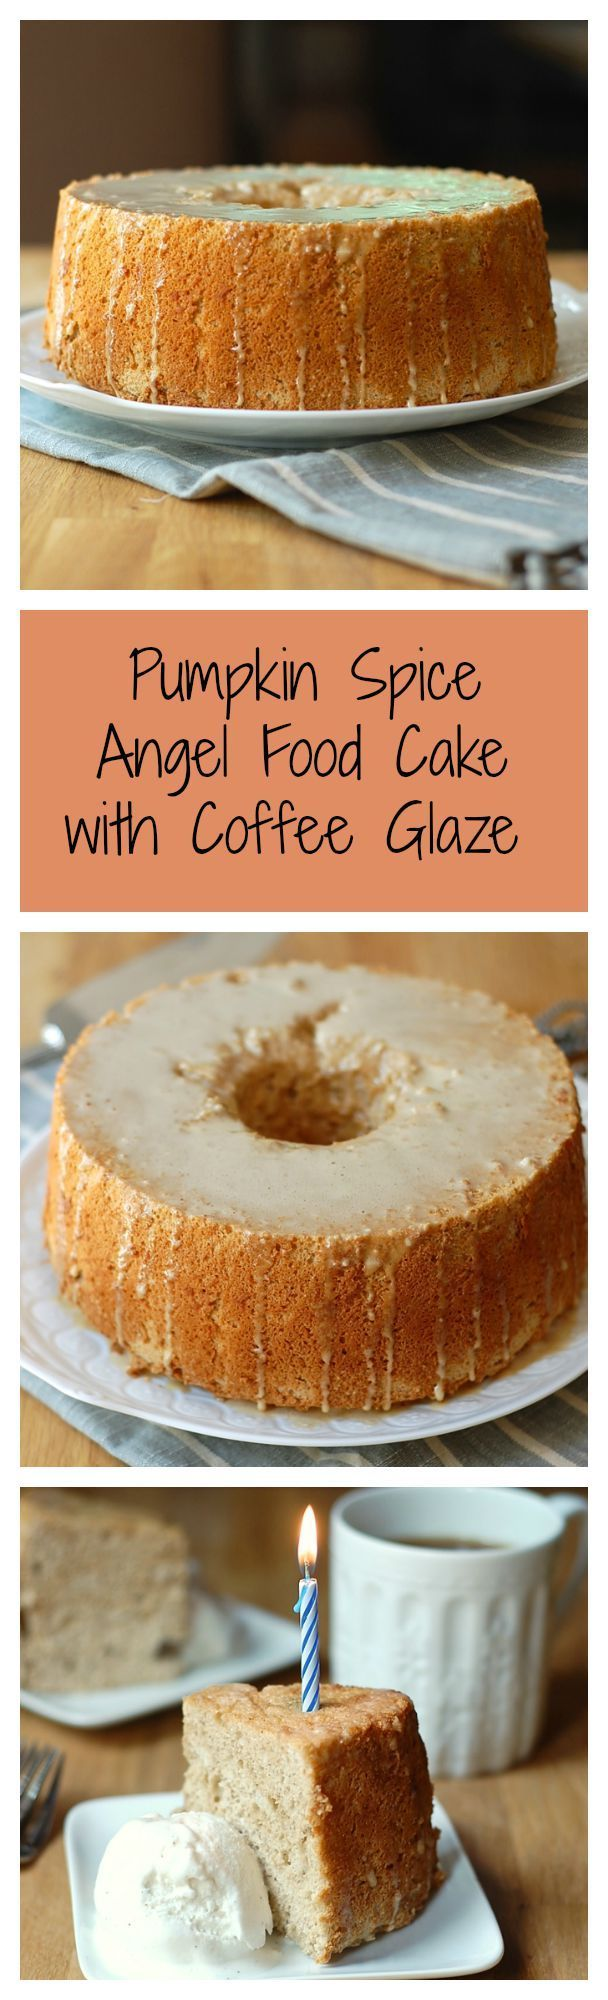 This dessert is a pumpkin spice latte in cake form. It makes the perfect light fall dessert!